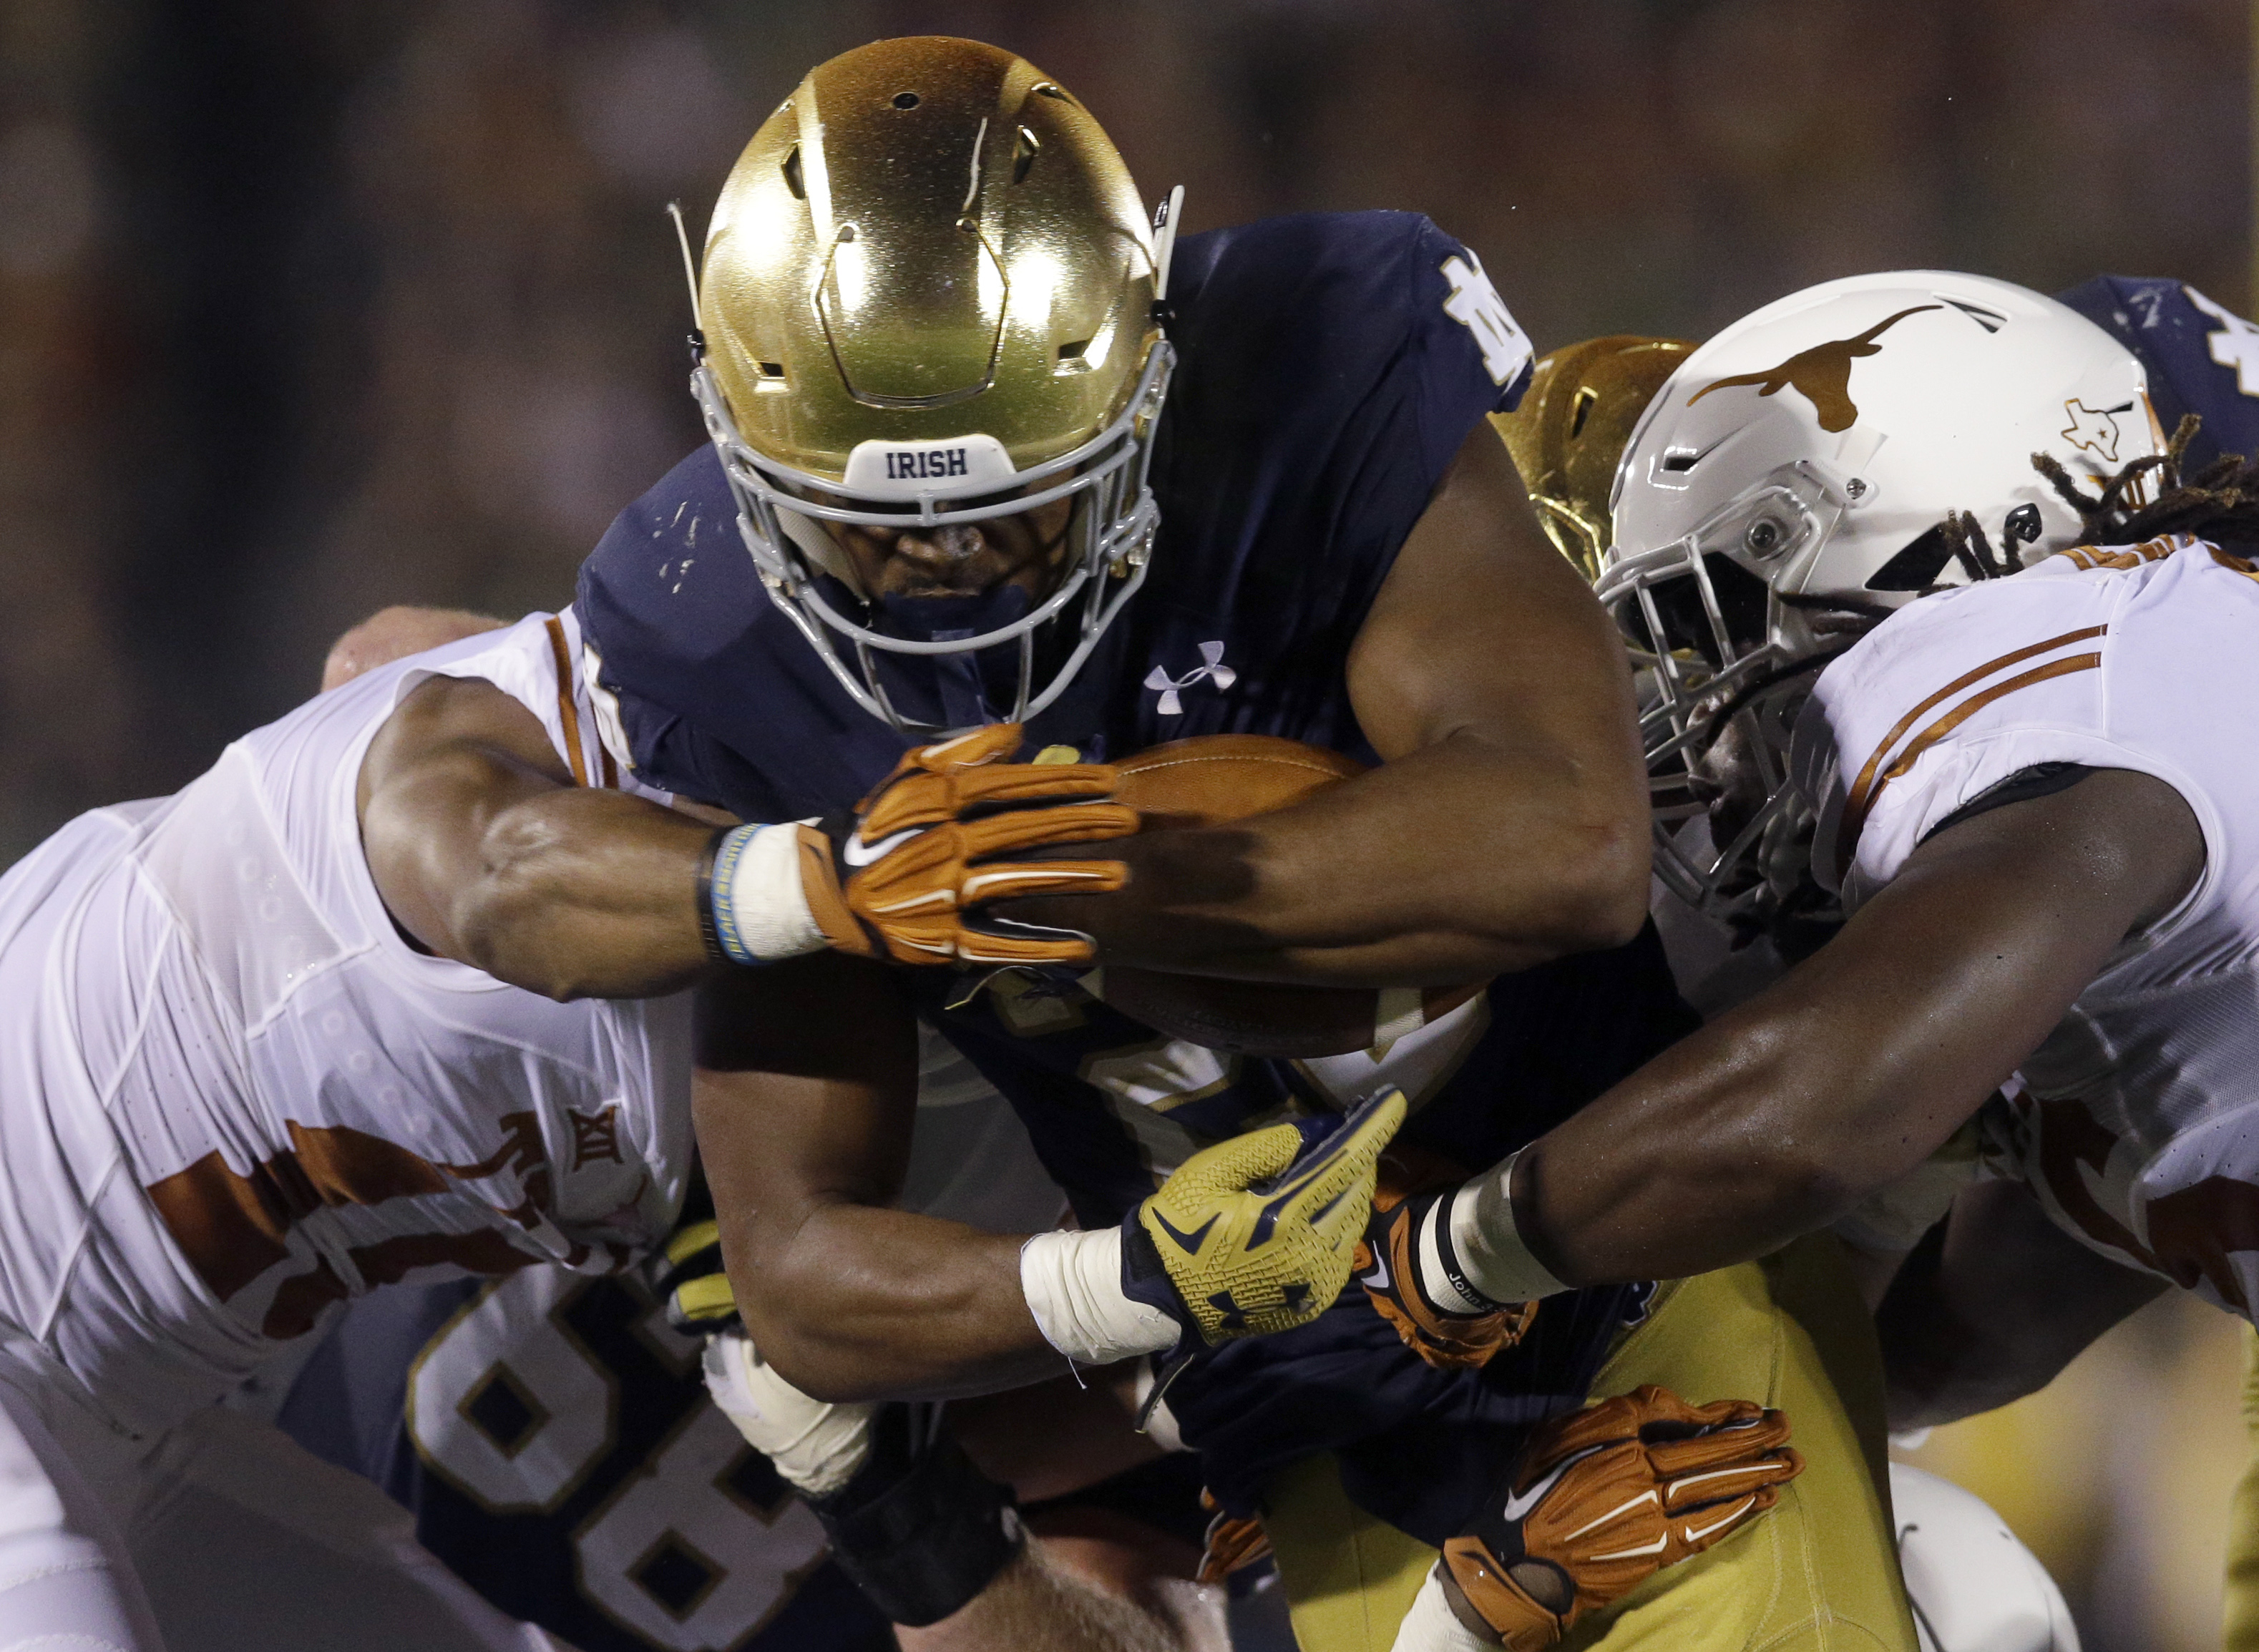 Notre Dame running back C.J. Prosise, center, runs with the ball against Texas cornerback Bryson Echols, left, and linebacker Malik Jefferson during the second half of an NCAA college football game Saturday, Sept. 5, 2015, in South Bend, Ind. Notre Dame w